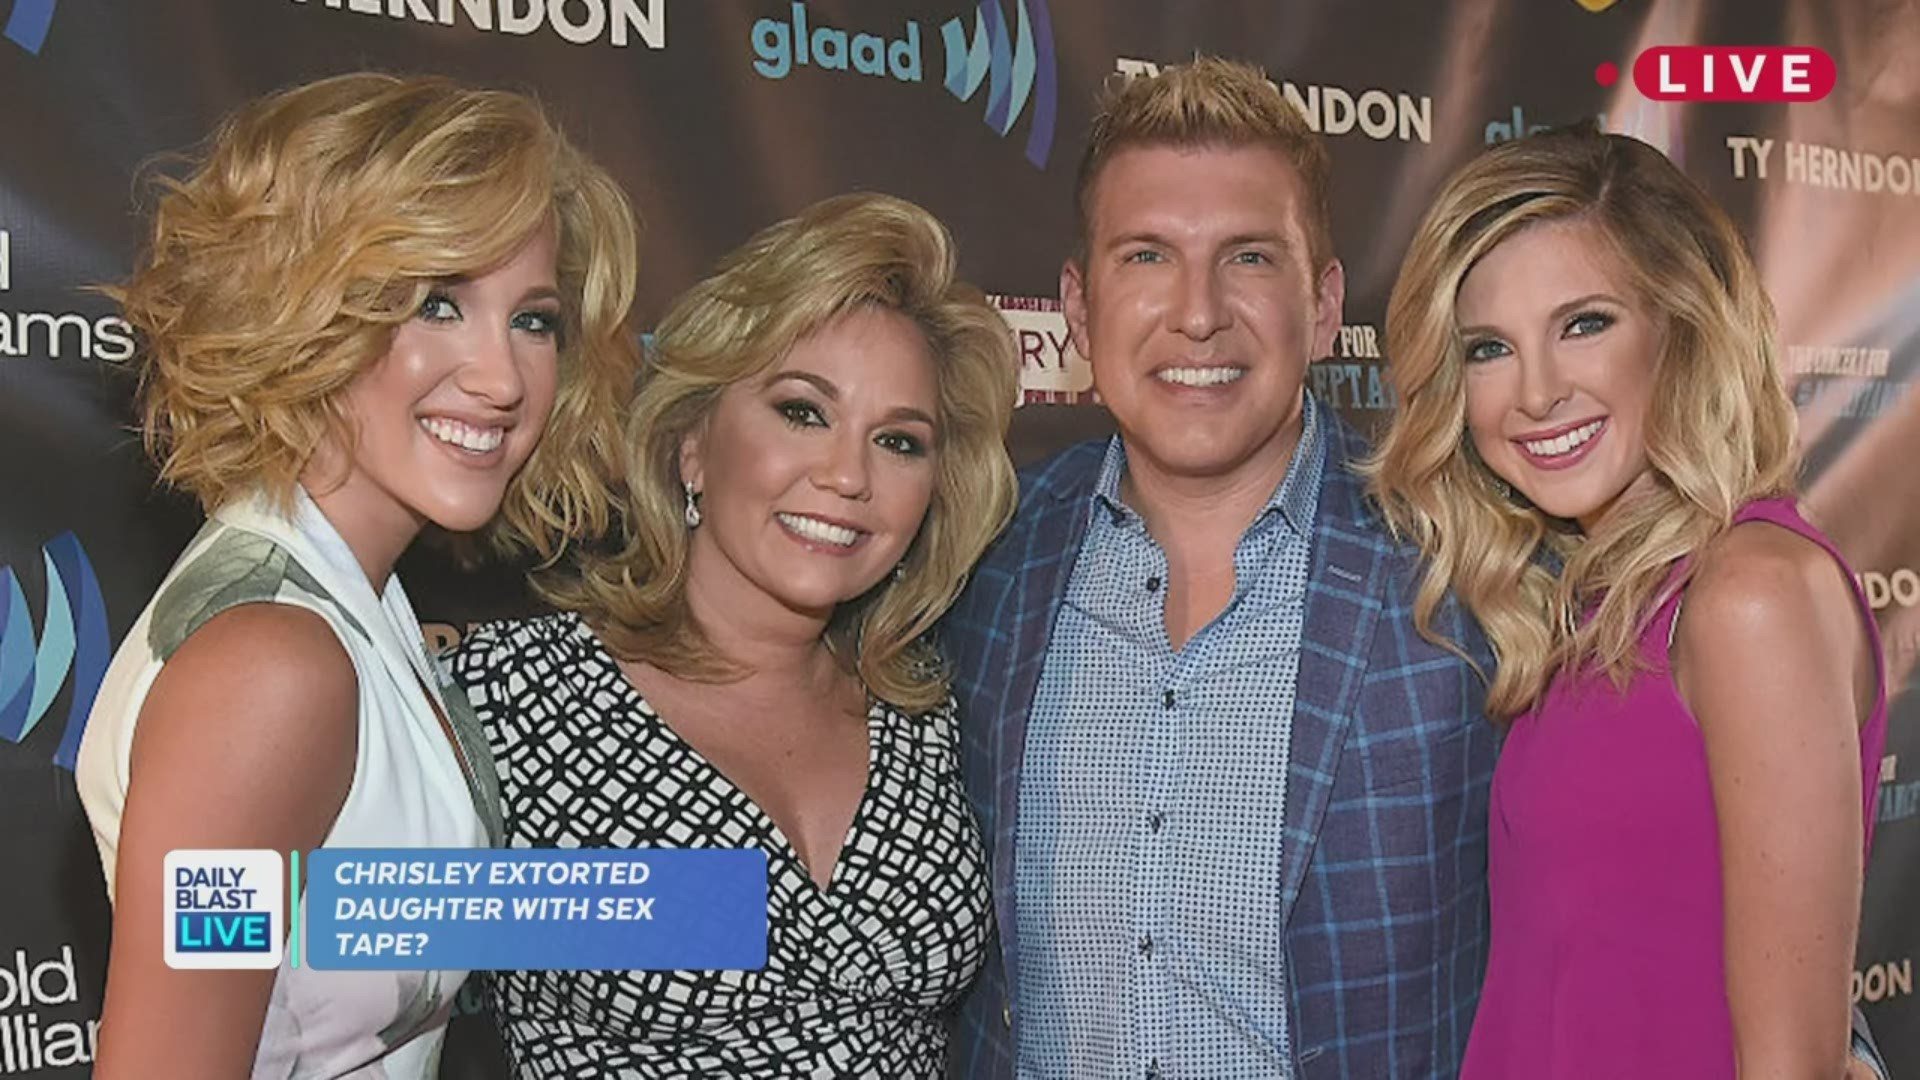 Lindsie Chrisley Sex Tape Extortion Reported In 2017 File Shows